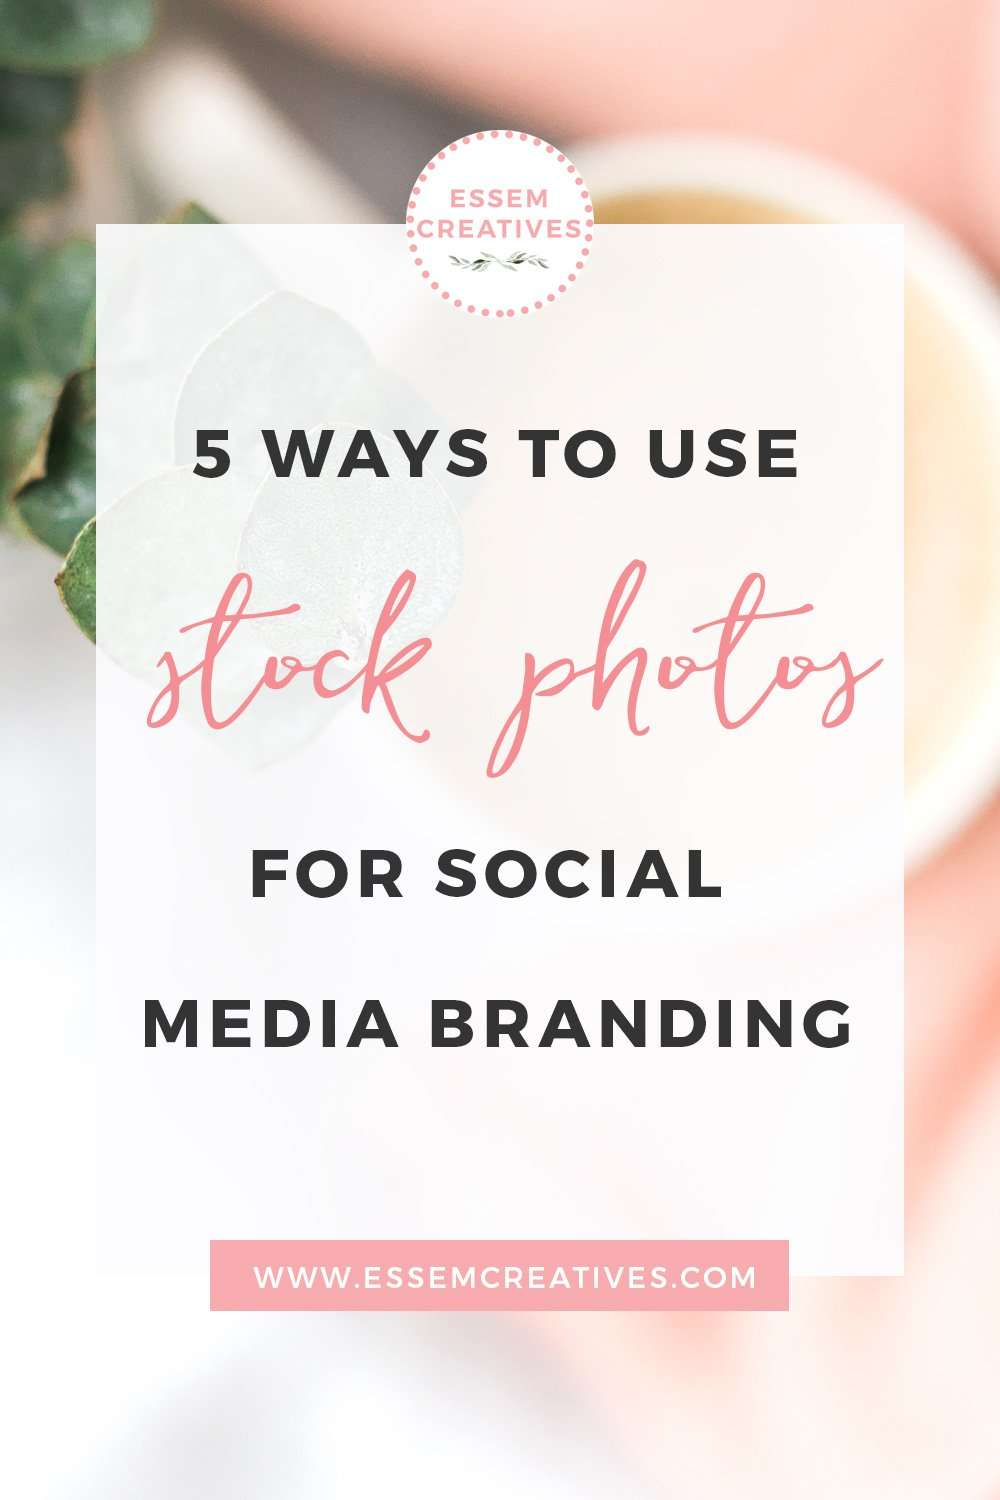 5 Ways to Use Feminine Stock Photos for Social Media Branding | Styled Stock Photography | Stock Photos for Bloggers | Cheap & Affordable Stock Images | Blog Branding Kit Photos | Social Media Tips | Grow Instagram Following | Blogging Tips for Beginners | You want to achieve a soft, pretty, feminine look for your social media branding but don't know the exact steps to get there. If that's you, then I've got you covered.